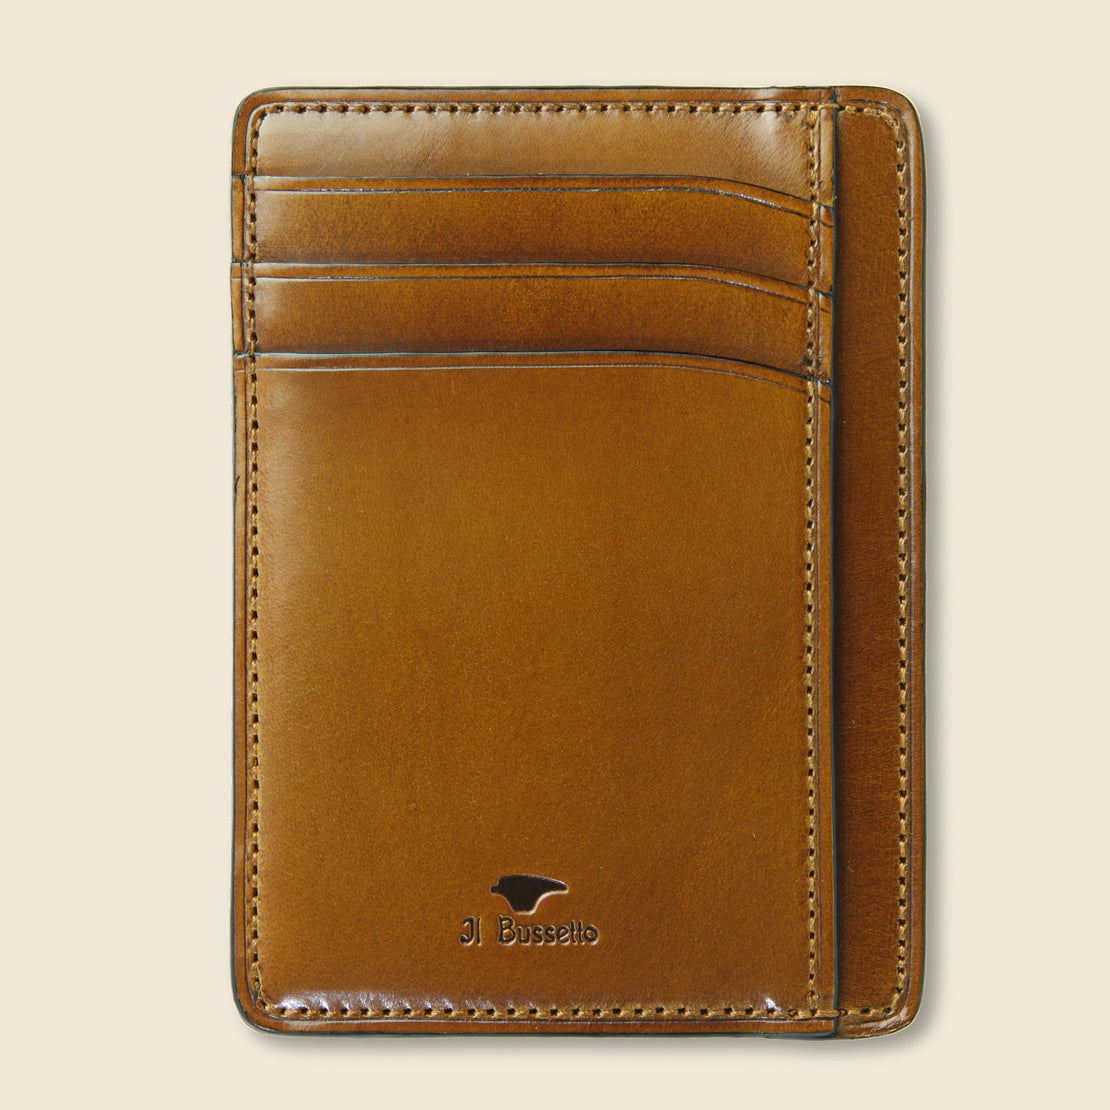 Il Bussetto Card and Document Case - Light Brown